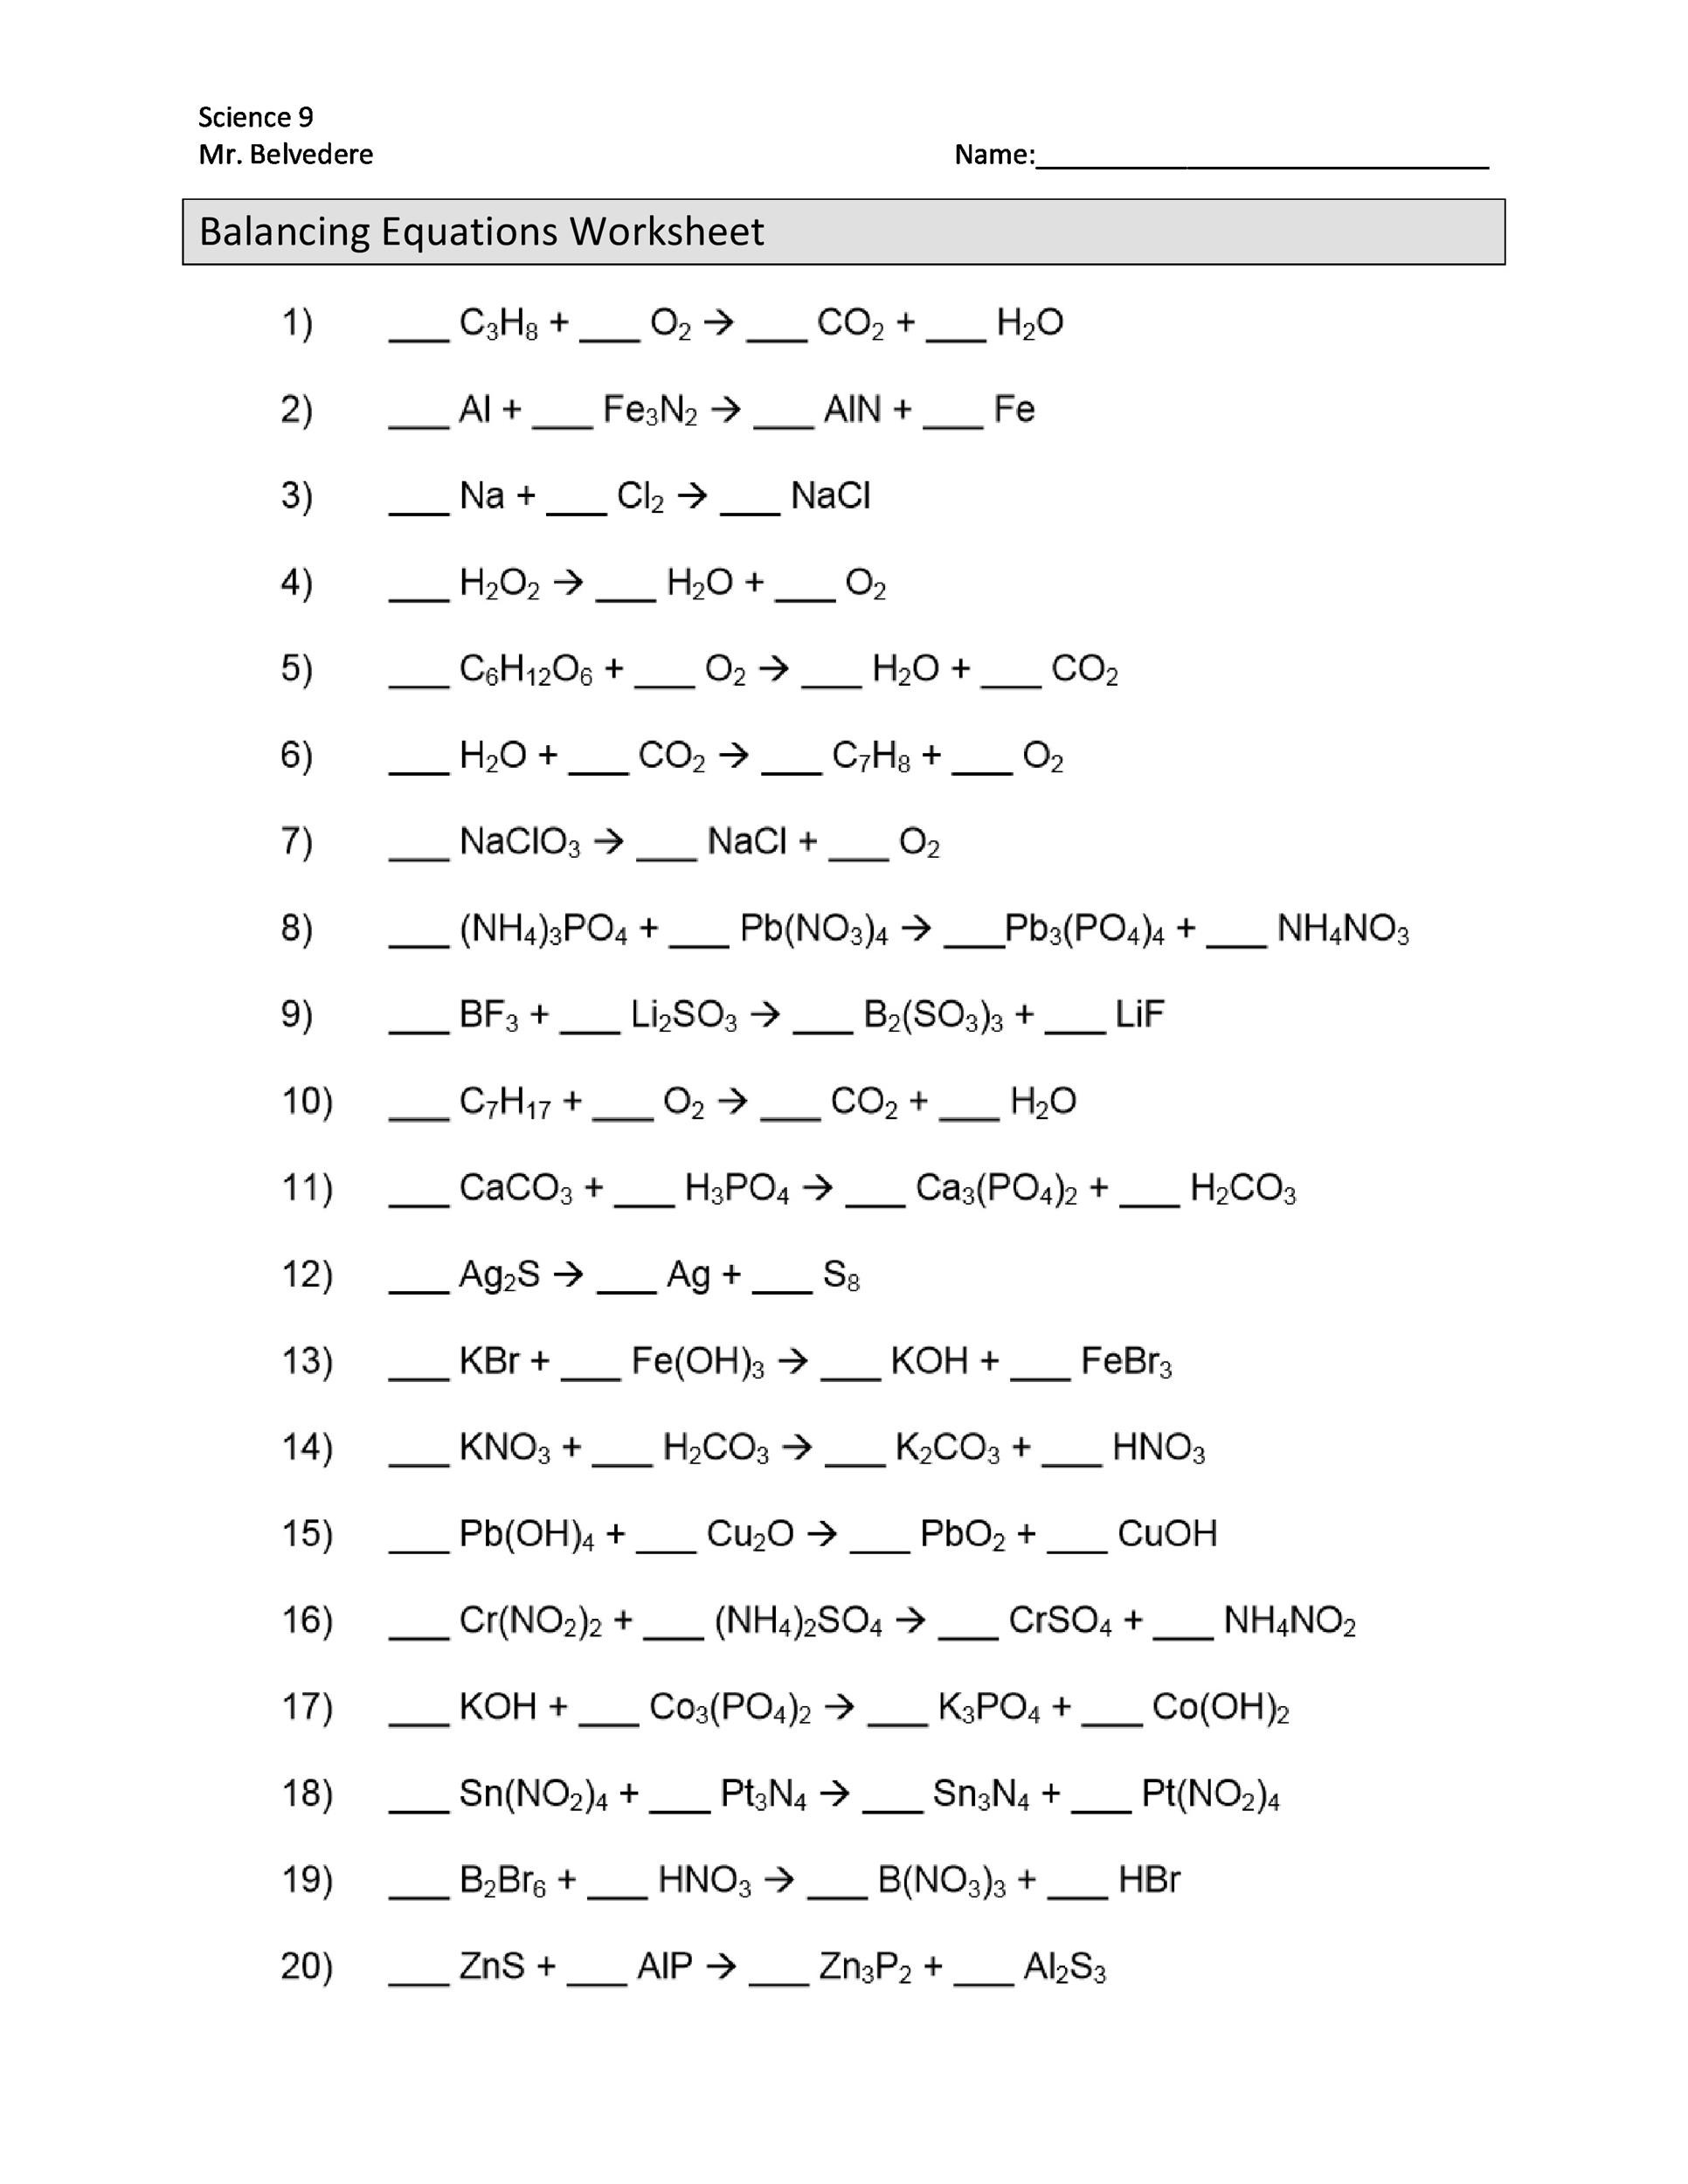 30 Nuclear Equations Worksheet Answers